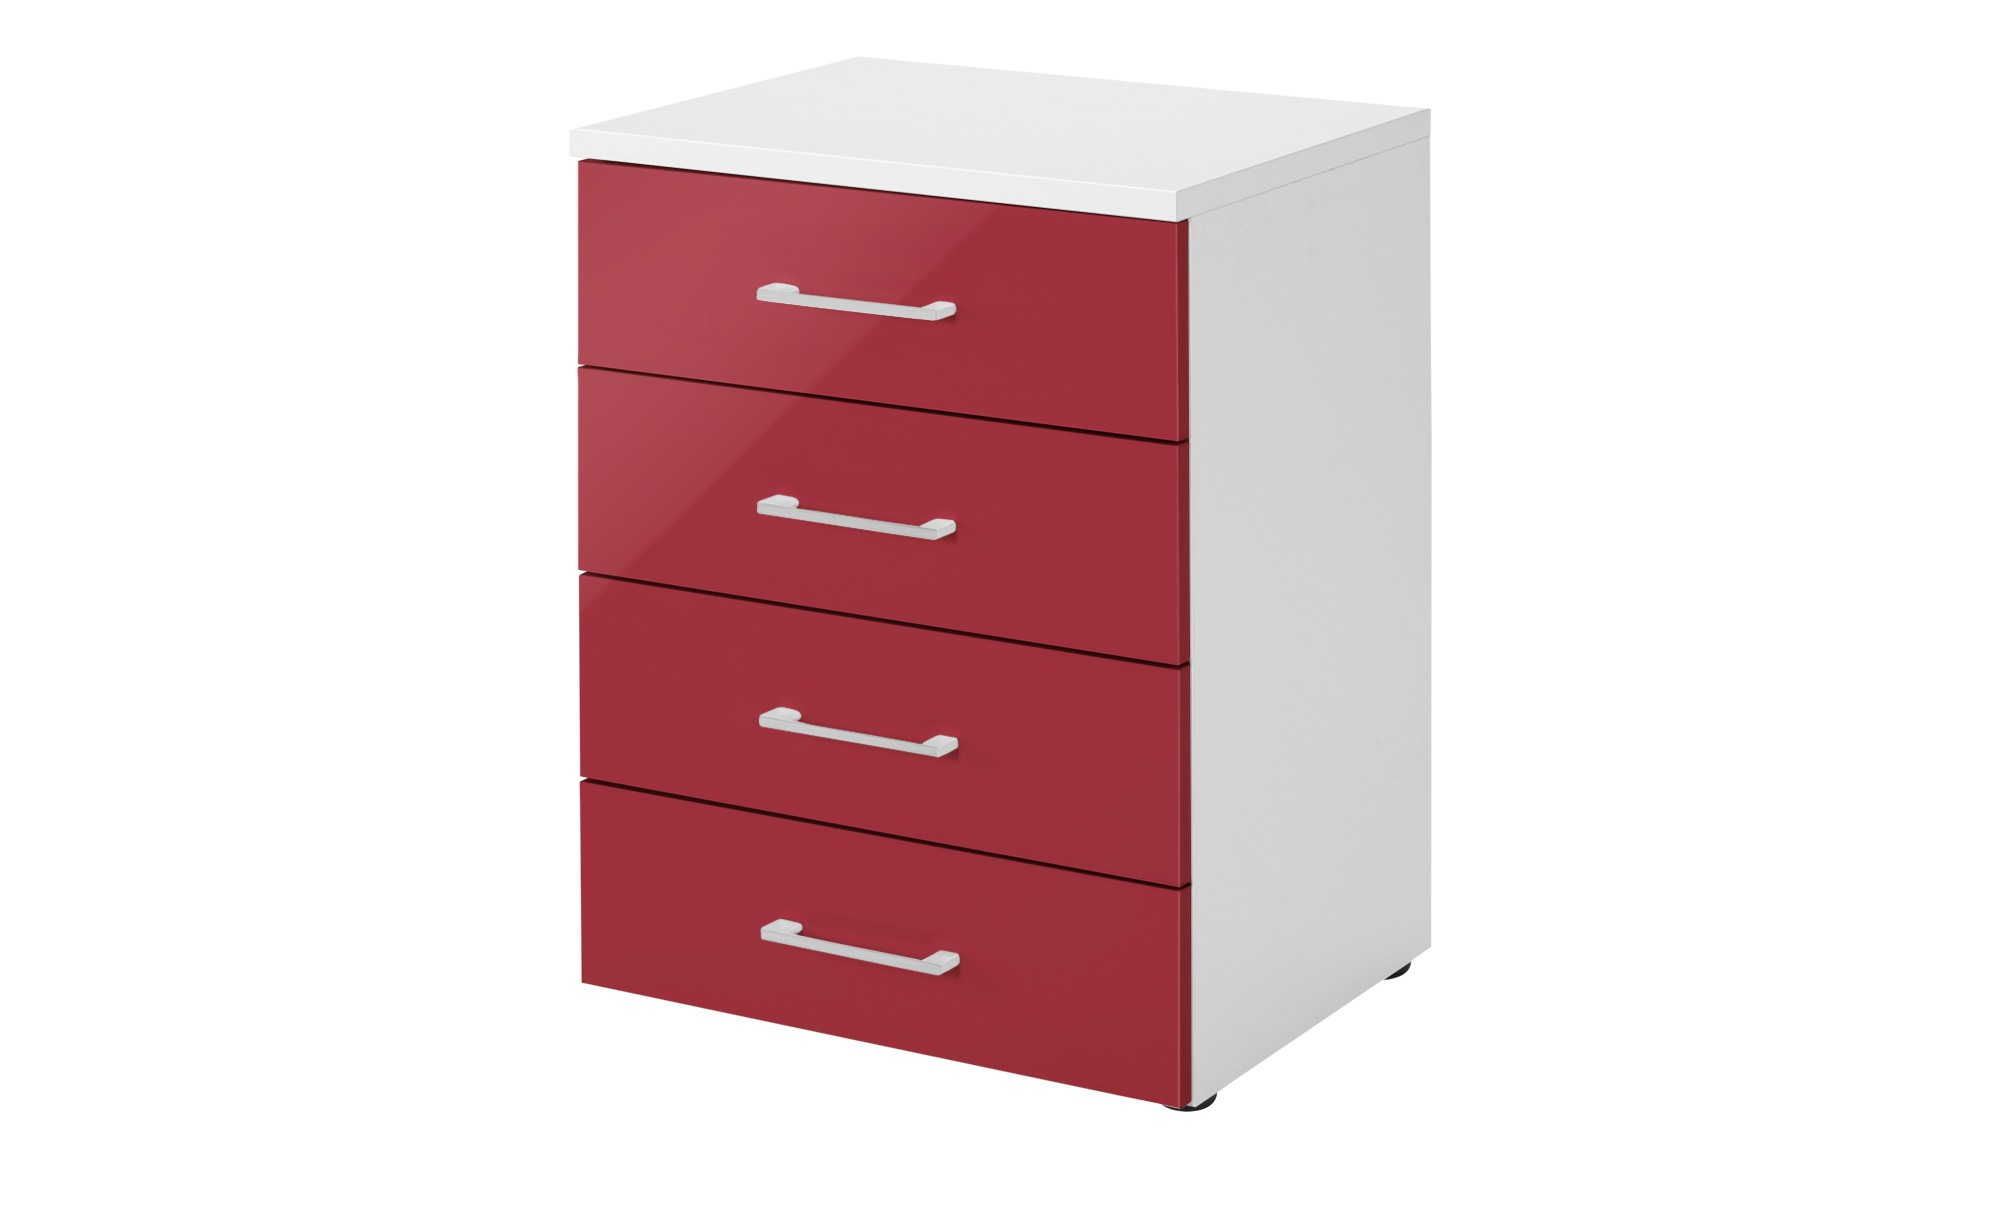 nachtkommode colors breite 50 cm h he 68 cm rot online kaufen bei woonio. Black Bedroom Furniture Sets. Home Design Ideas